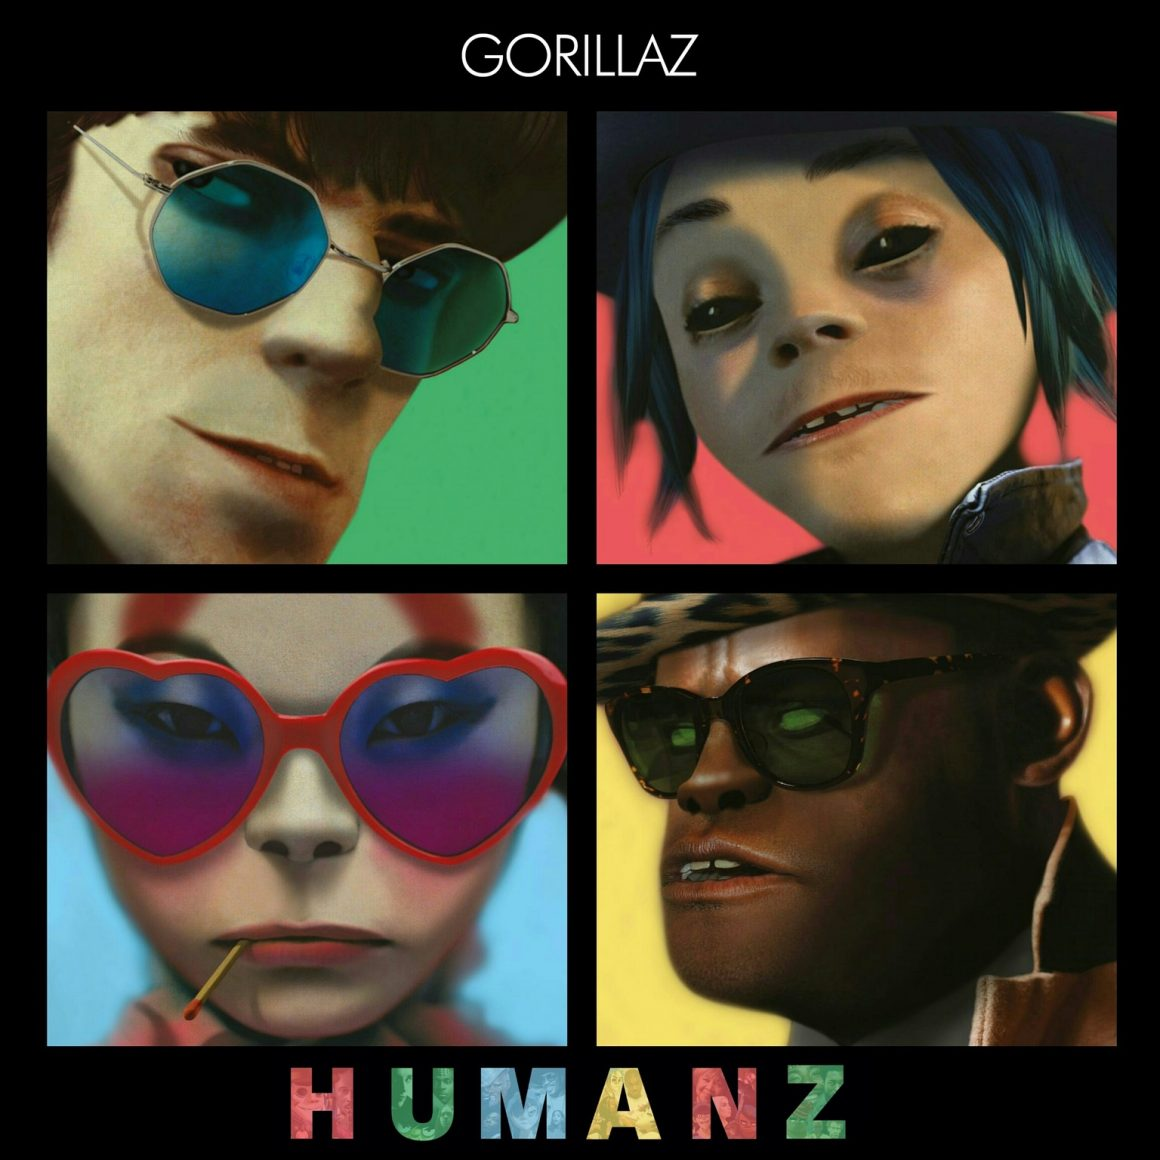 New Gorillaz album released after 7 years of silence